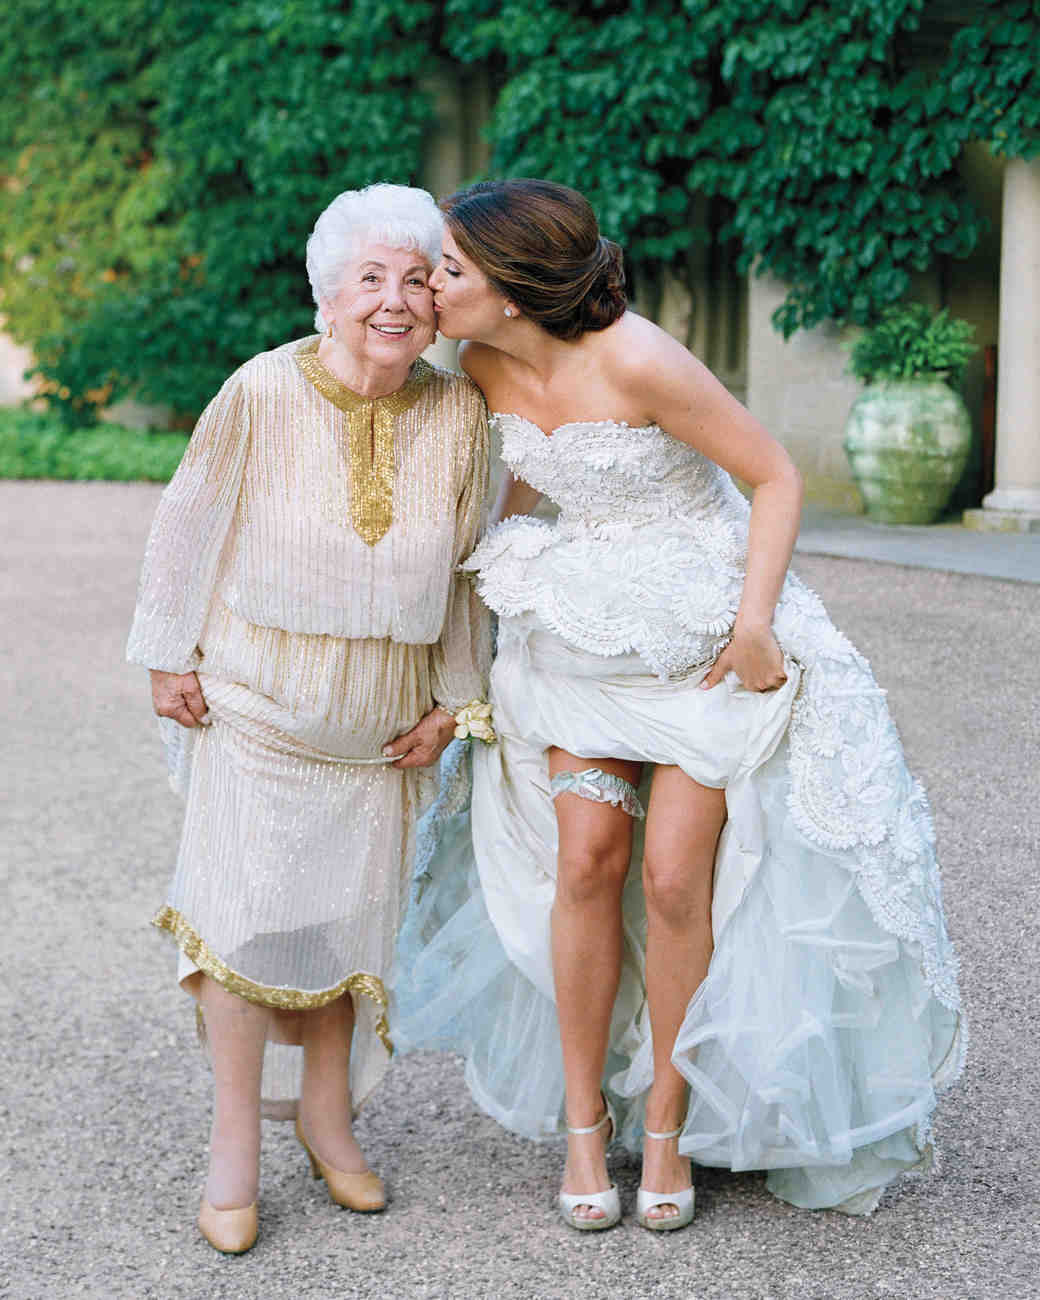 Bride Surprises Grandmother By Wearing Her Wedding Dress: The Bride Wore Blue At This Connecticut Wedding